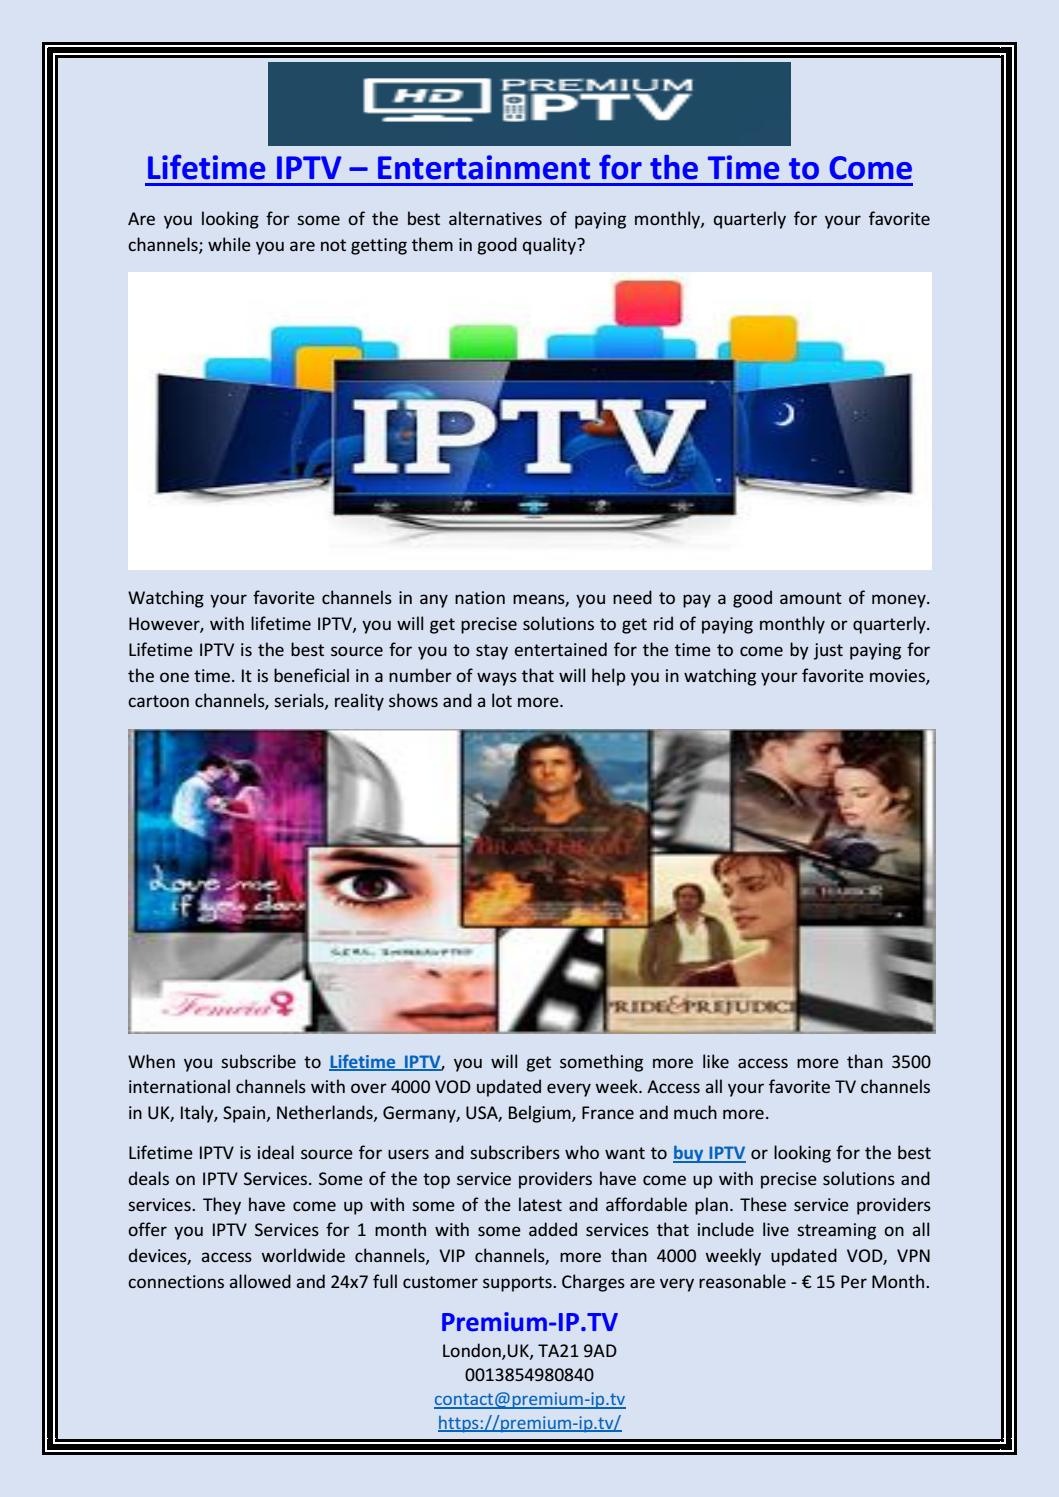 Lifetime IPTV – Entertainment for the Time to Come by Premium-IP TV